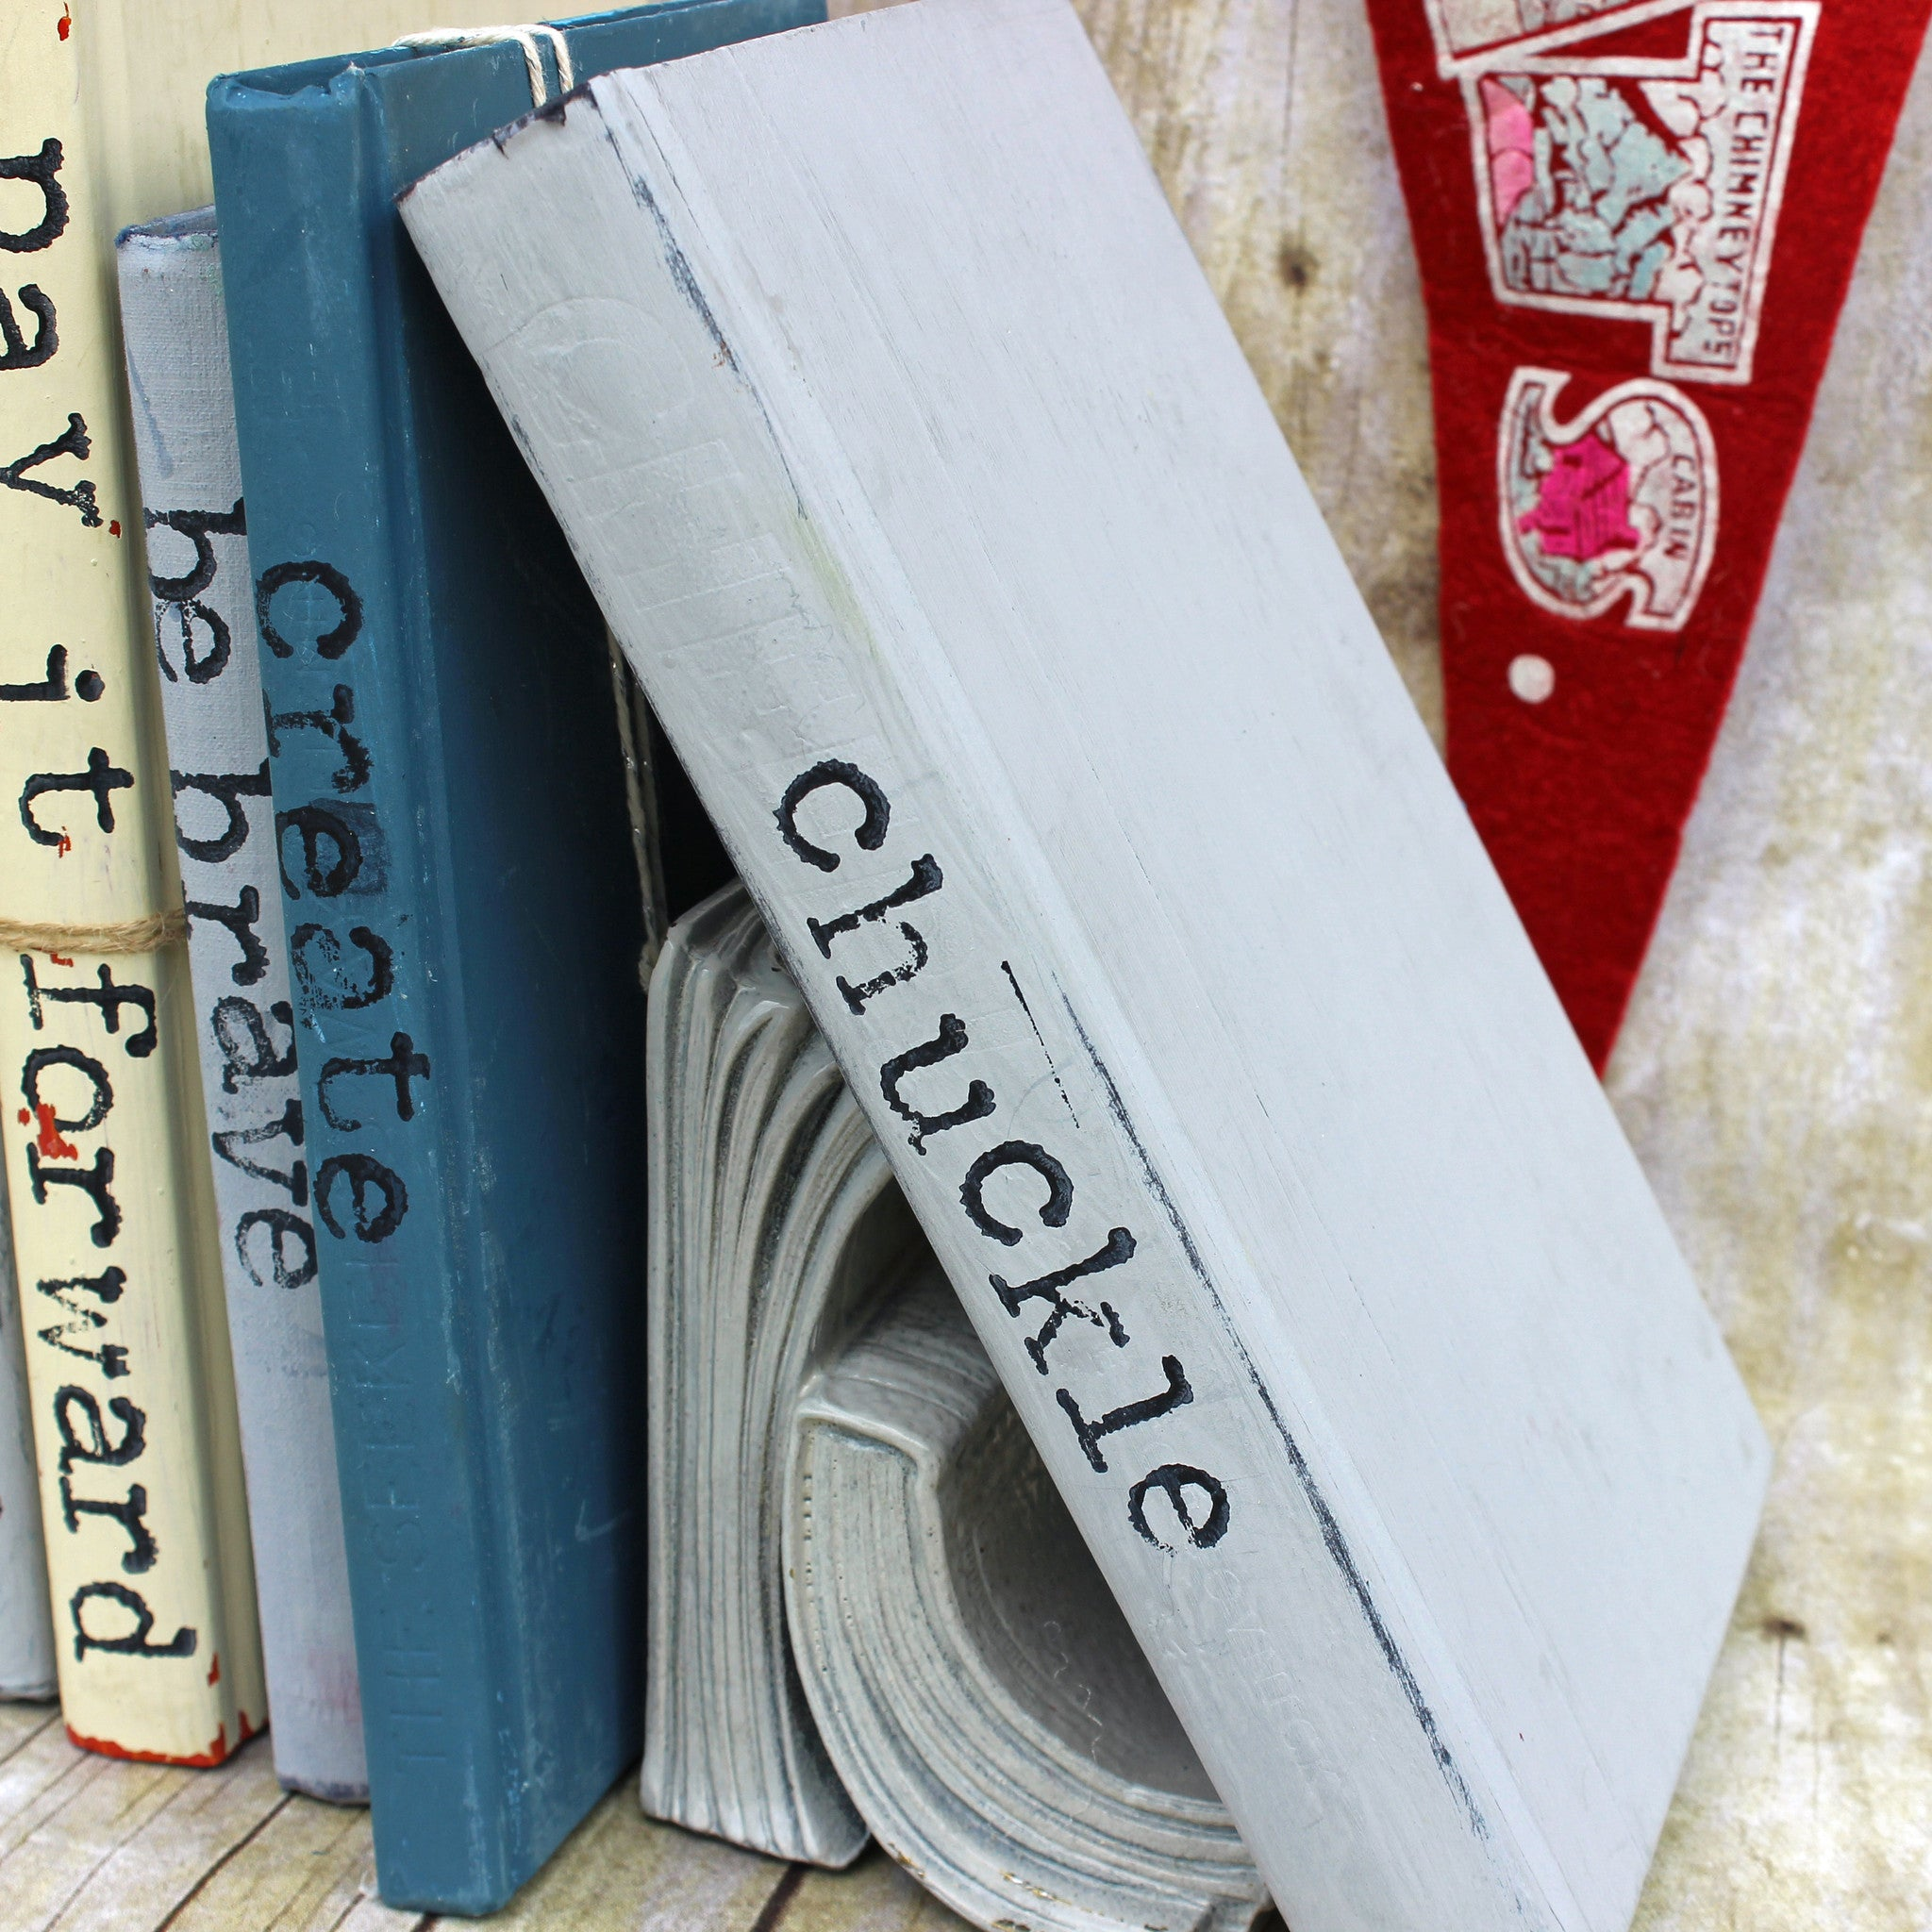 chuckle altered book art